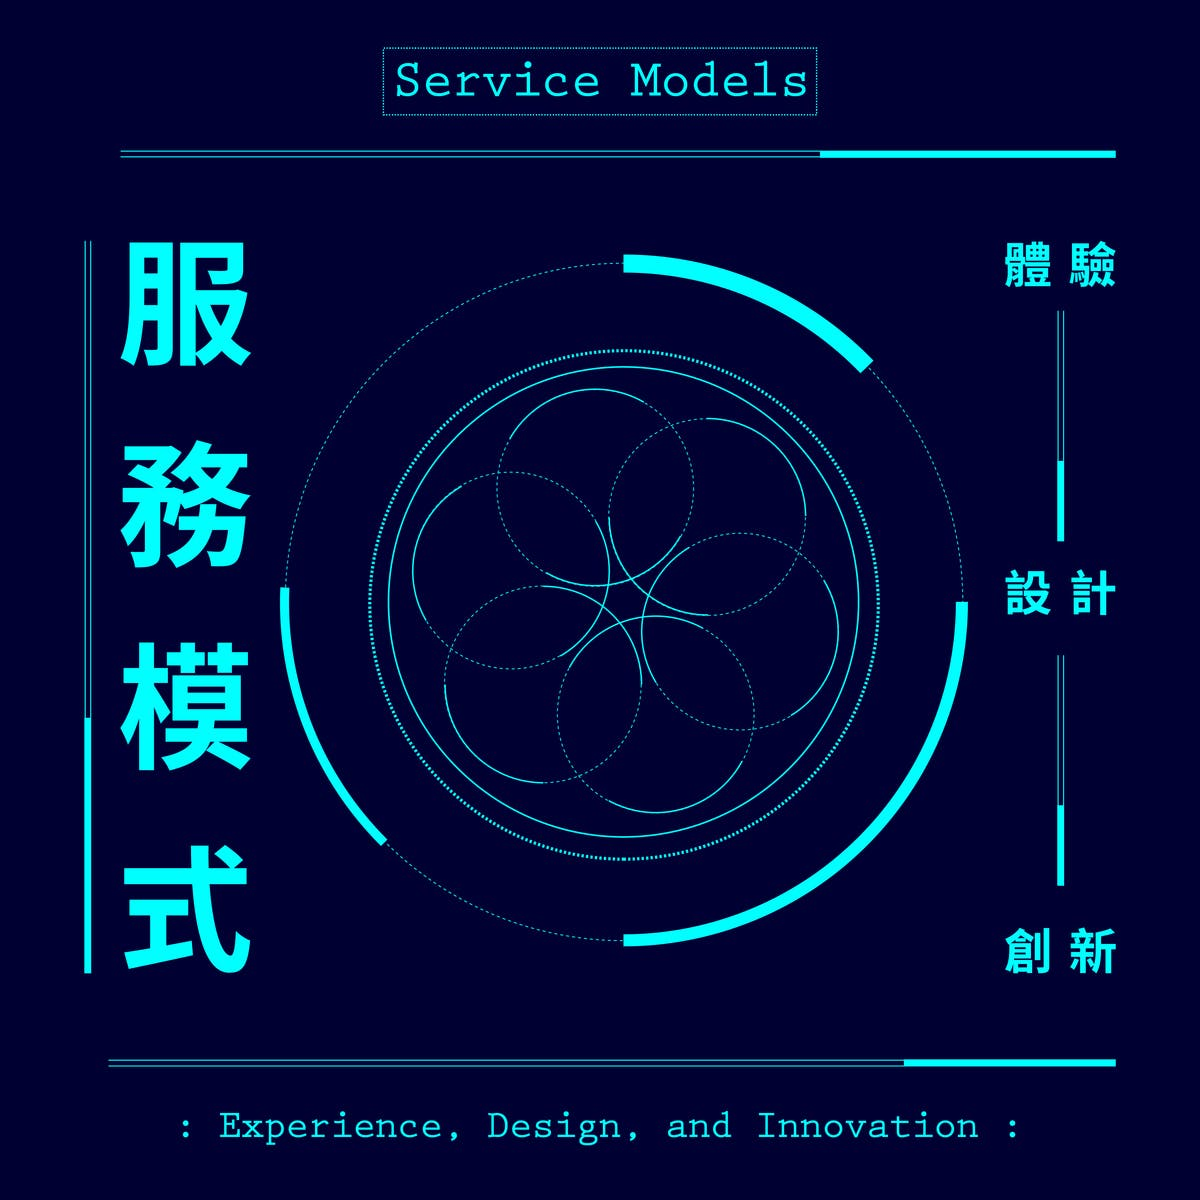 服務模式的體驗、設計與創新:從痛點到賣點 (Experience, Design, and Innovation of Service Models: from Pain Points to Selling Points)